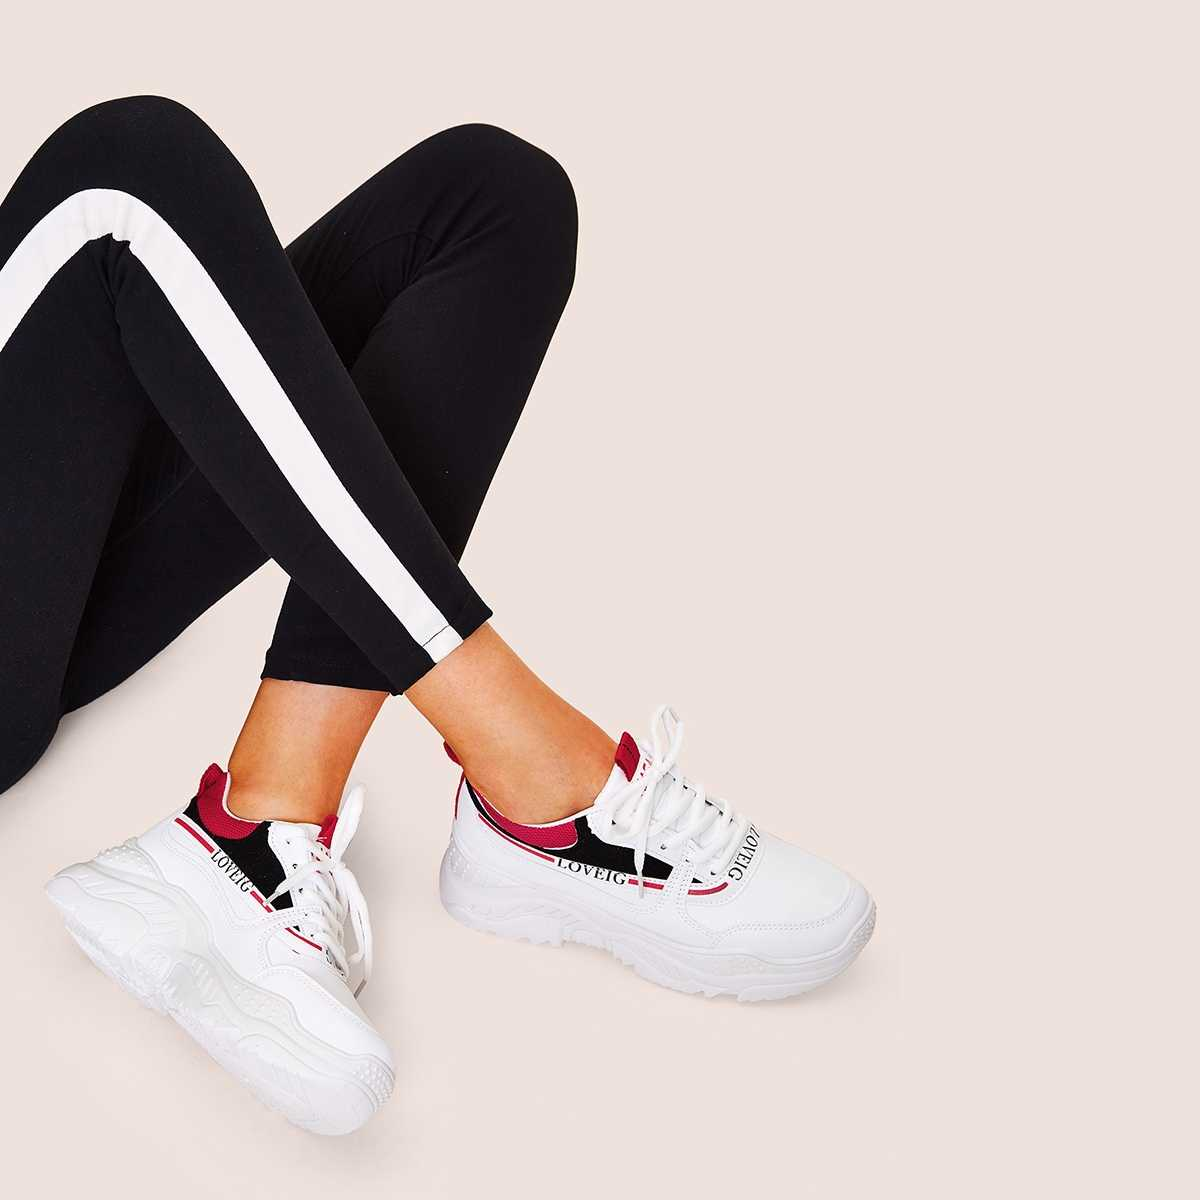 Lace-up Front Flatform Chunky Sole Trainers in Multicolor by ROMWE on GOOFASH